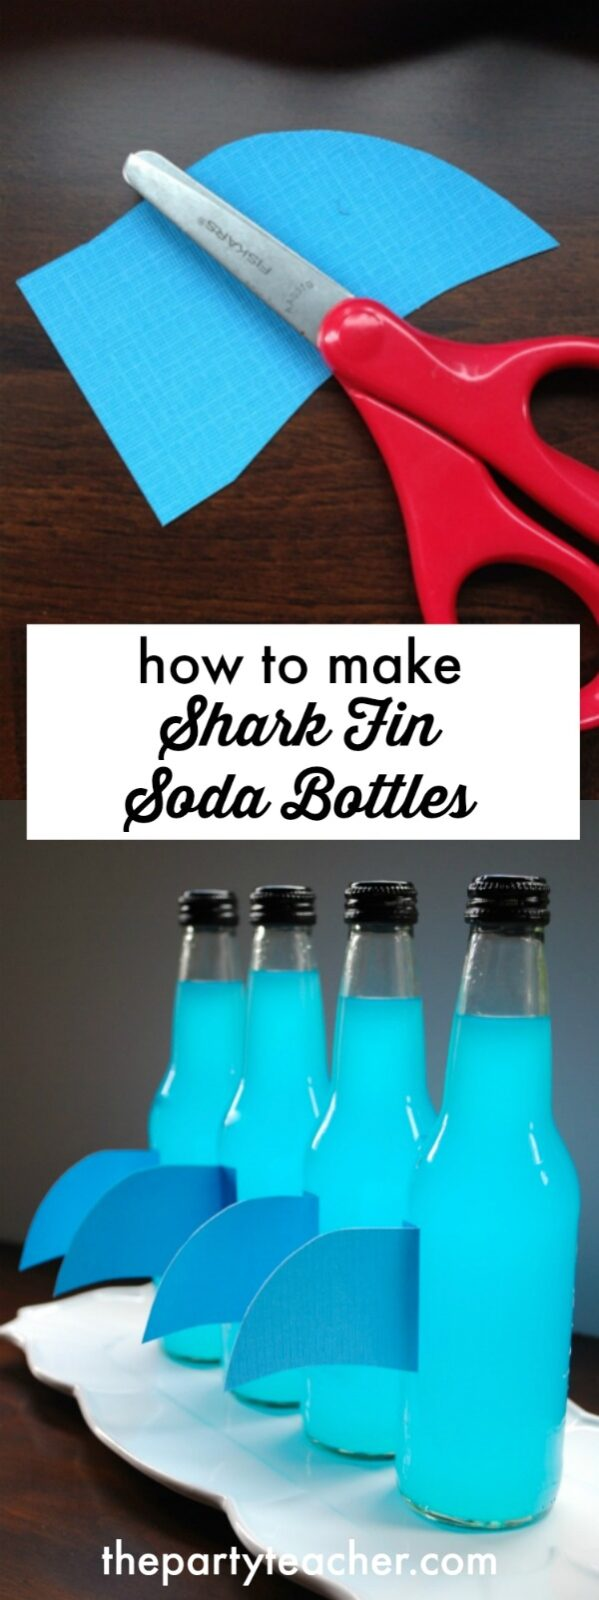 How to make shark fin soda bottles by The Party Teacher